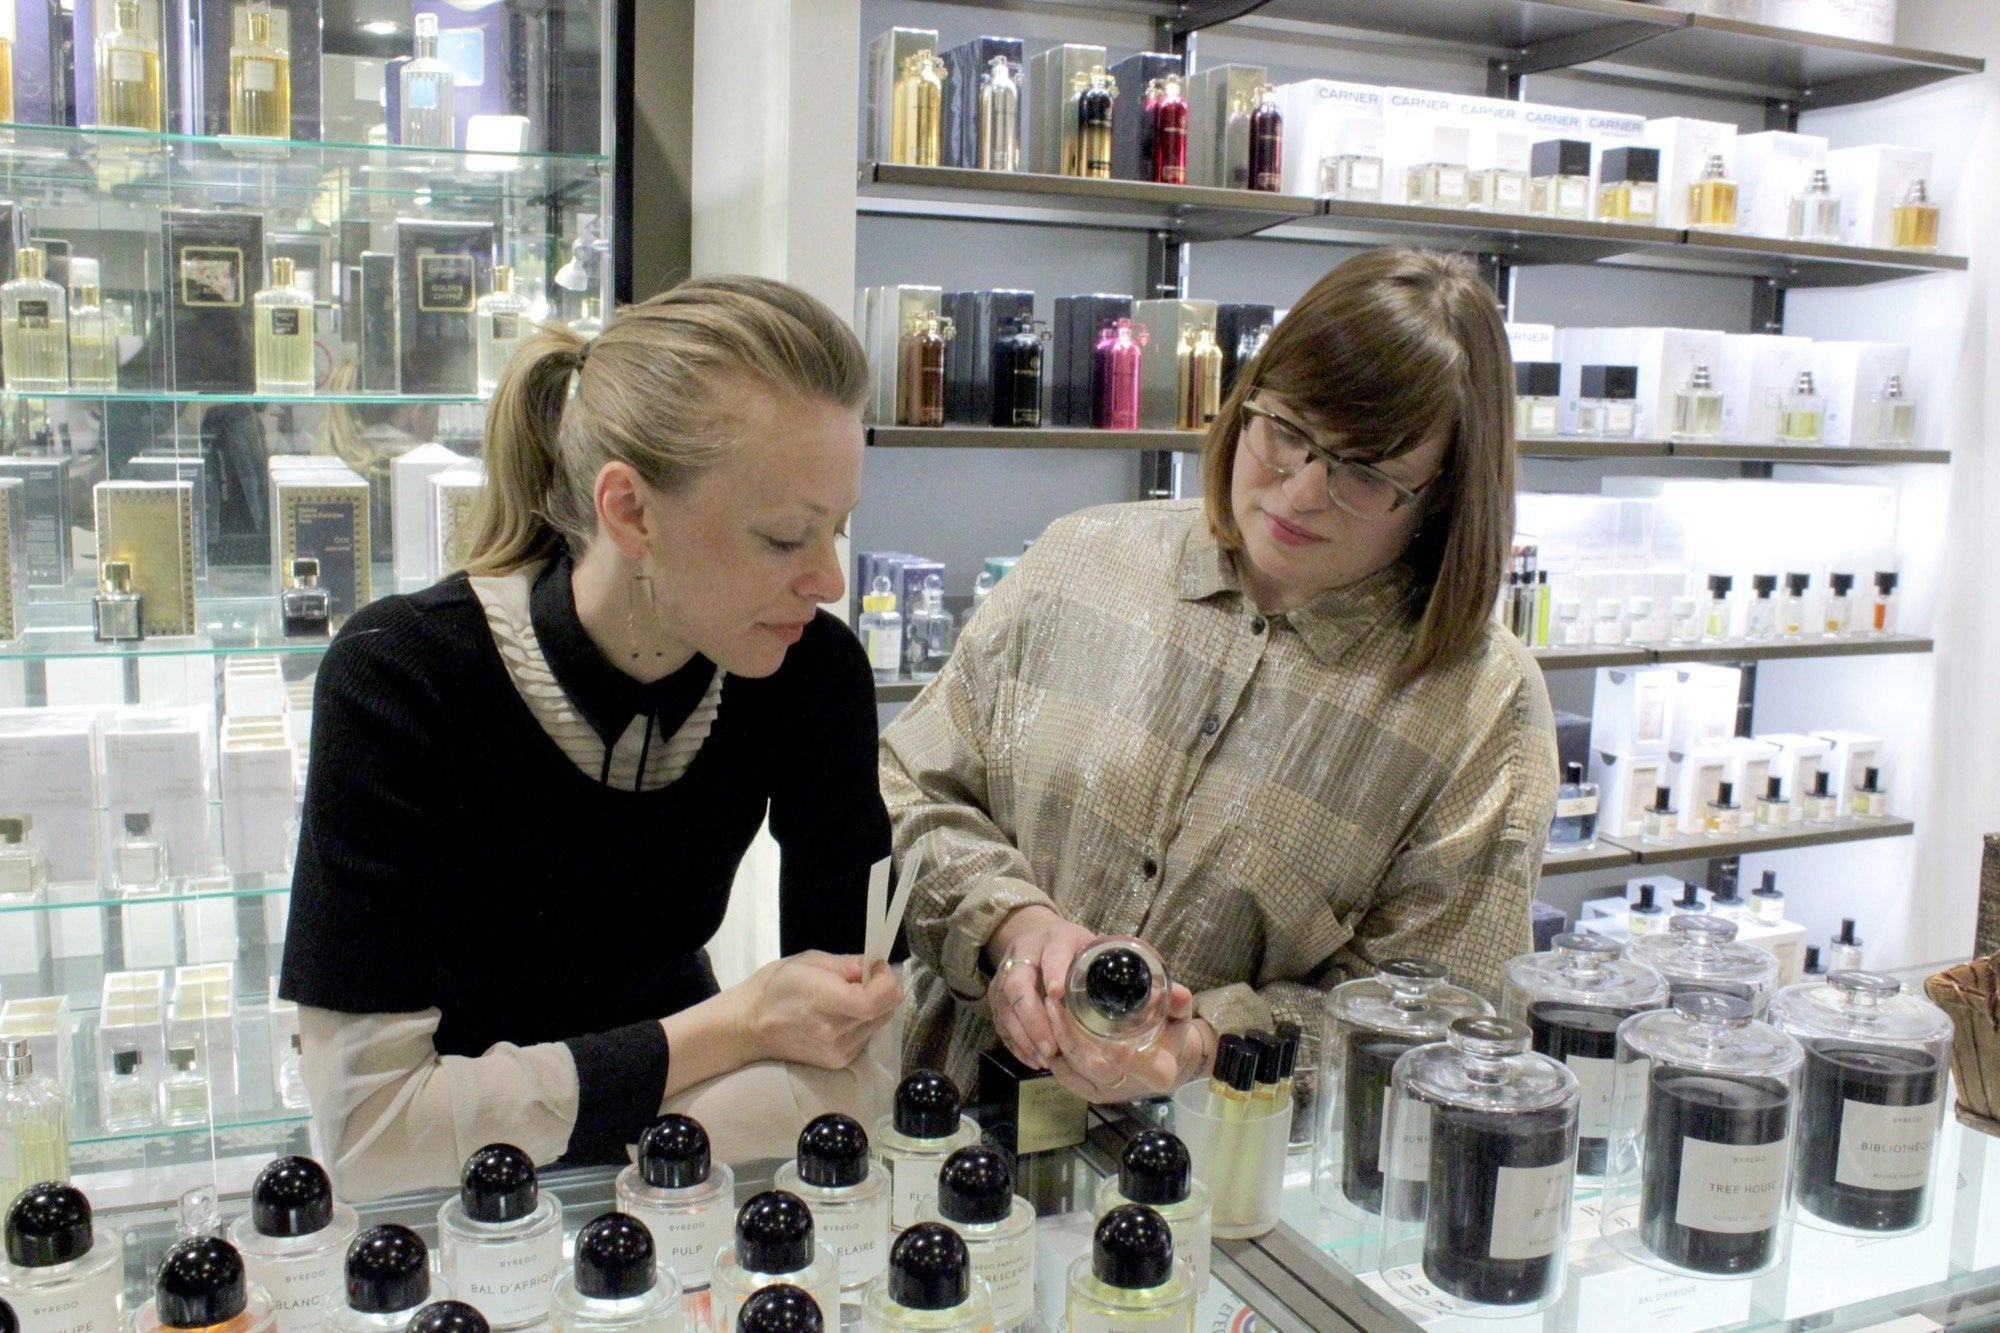 Tips & Tricks for Getting the Most Out of Your Fragrance with Tanja & Sharmane